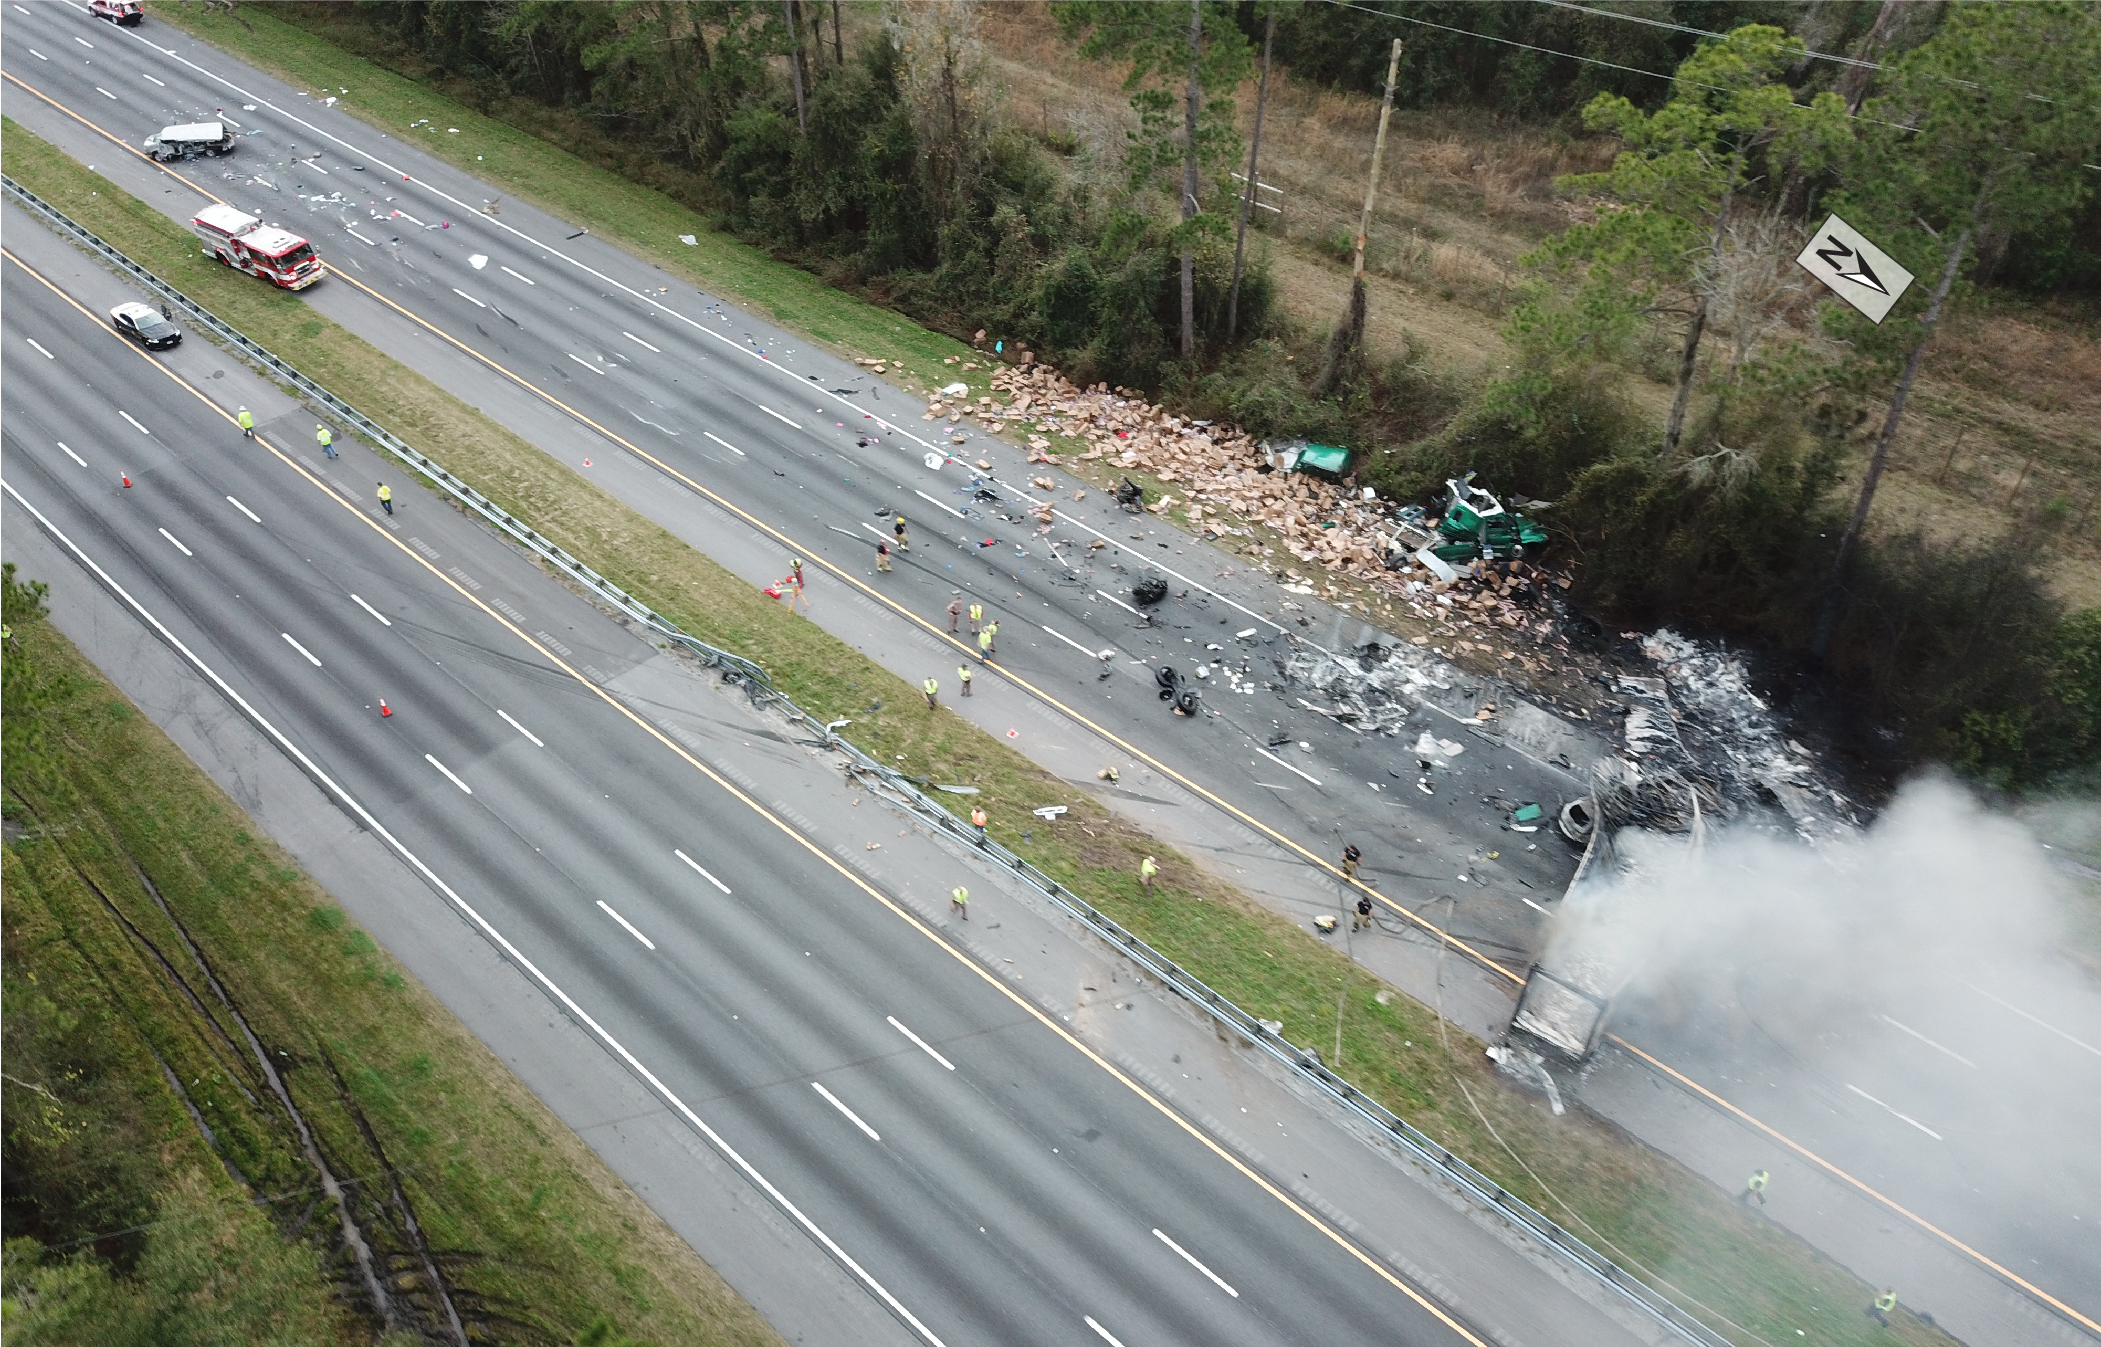 Aerial view of crash scene with vehicles at final rest.